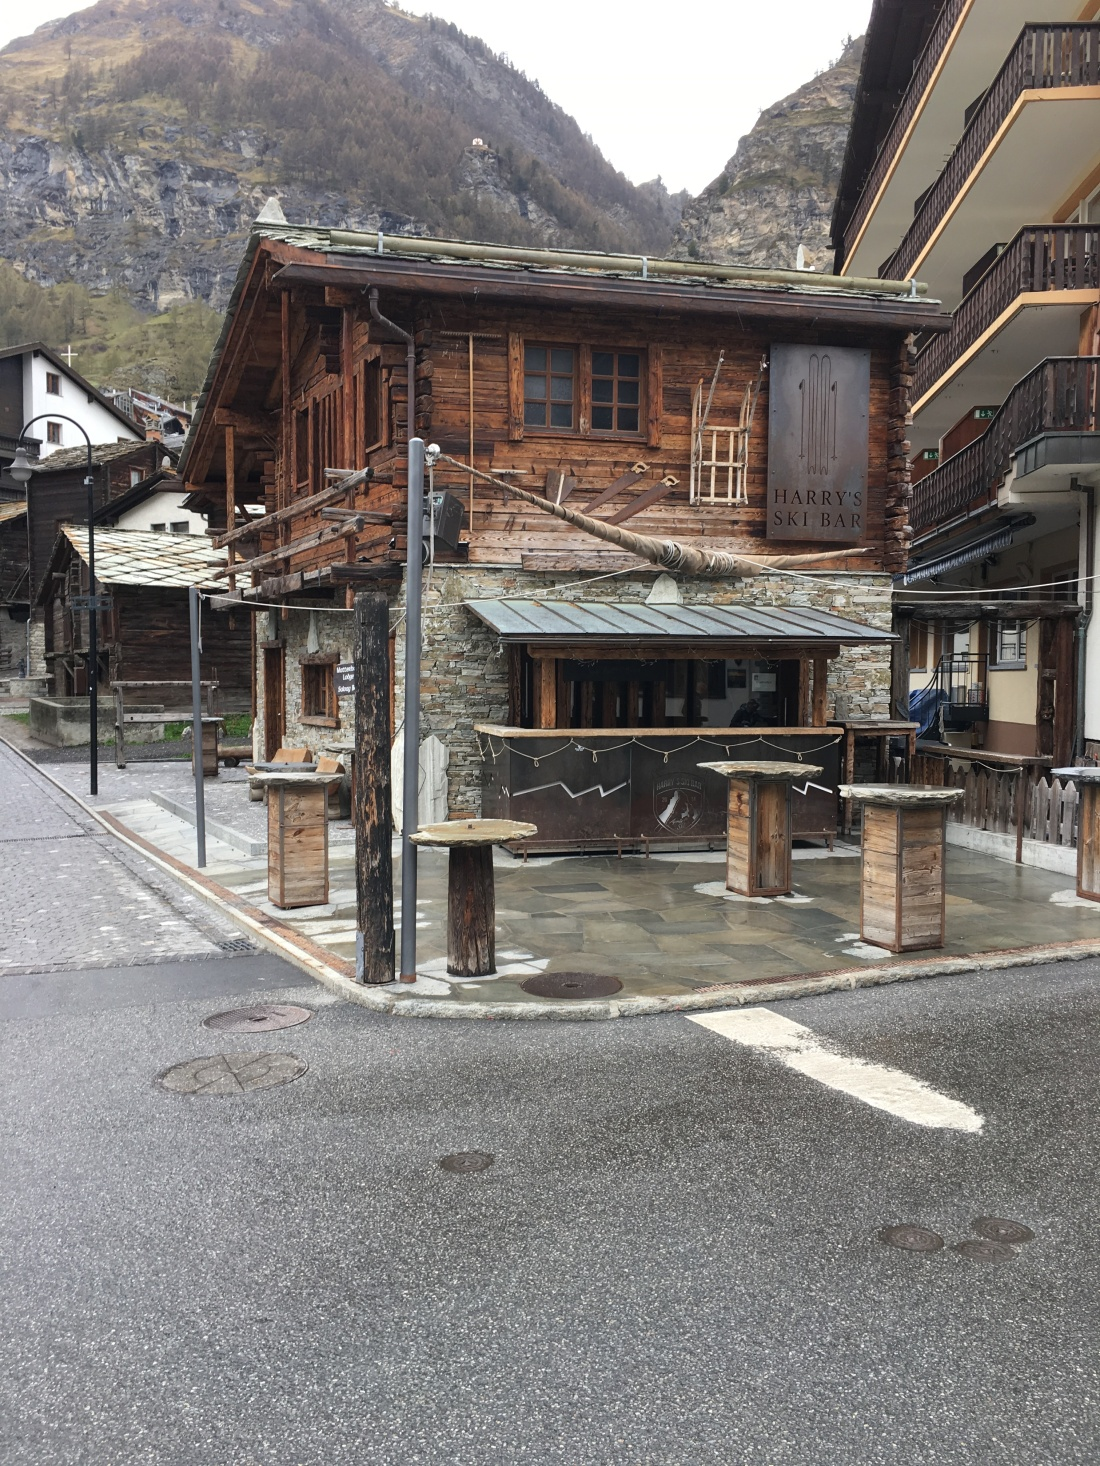 Downtown Zermatt, Switzerland, during the slow season. Brownell, May 2019